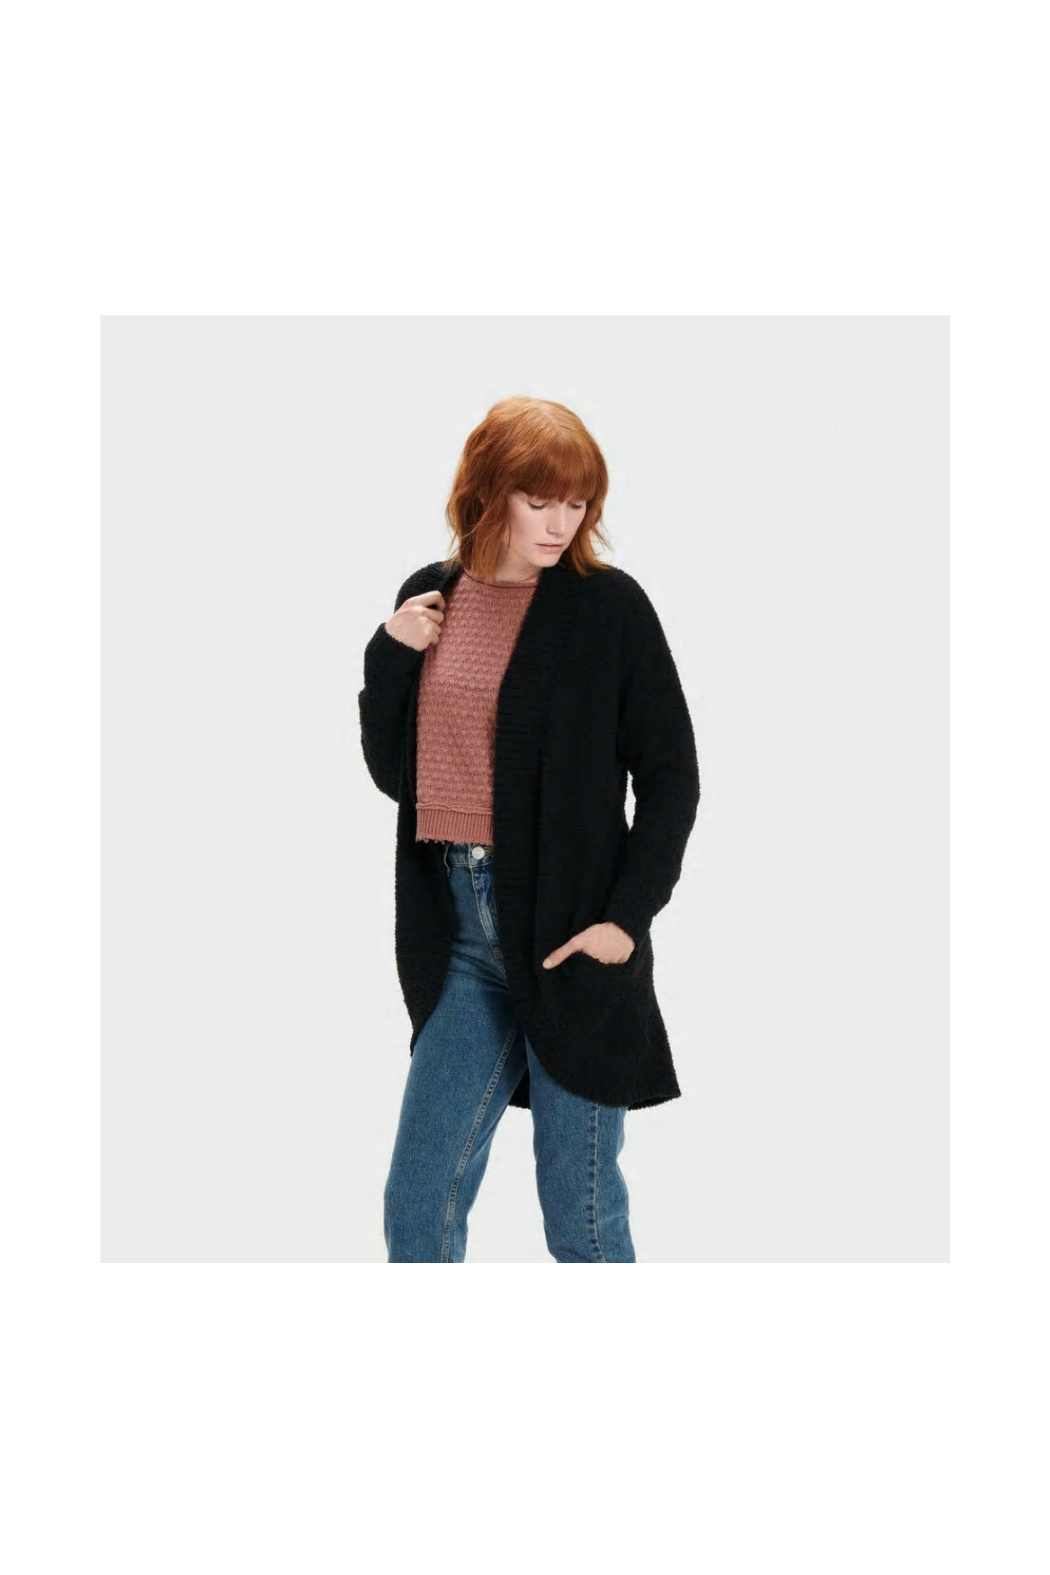 Ugg FREEMONT FLUFFY KNIT CARDIGAN - Front Cropped Image